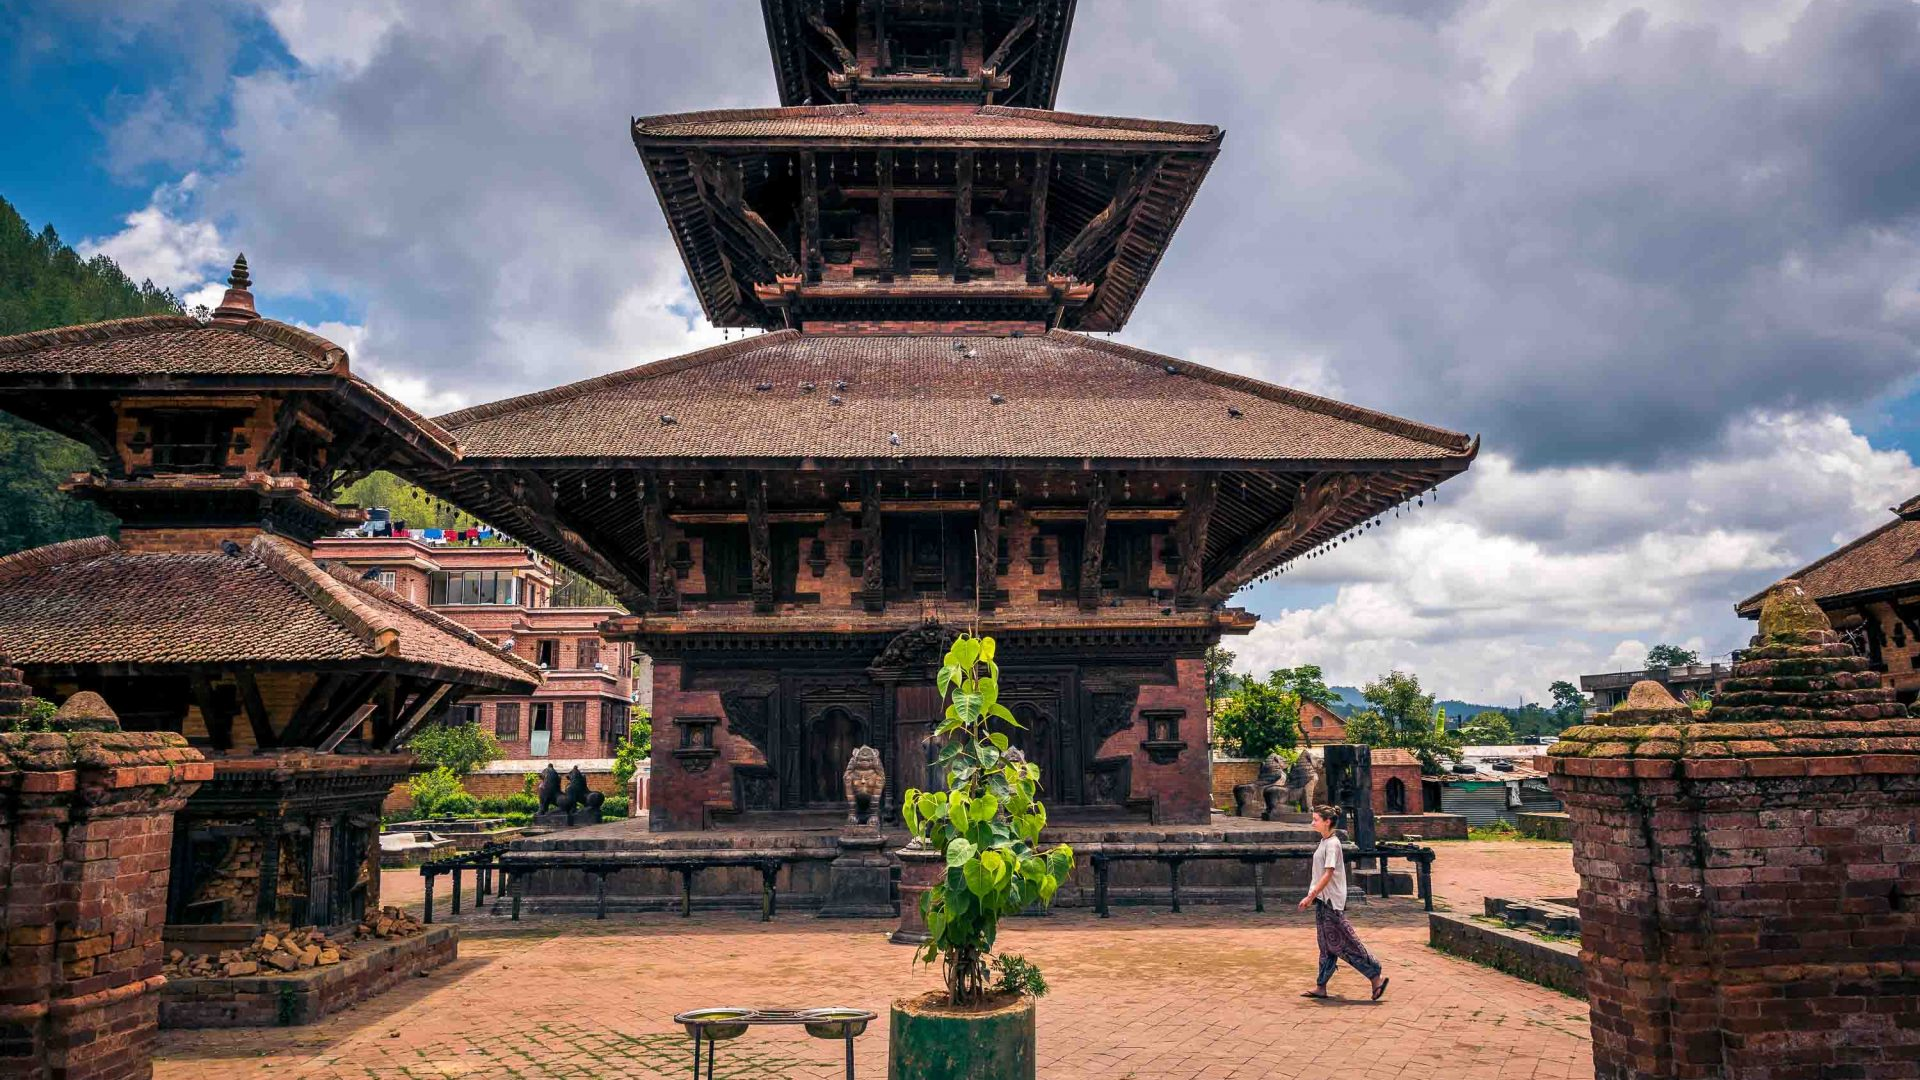 The stunning architecture of Panauti, Nepal.